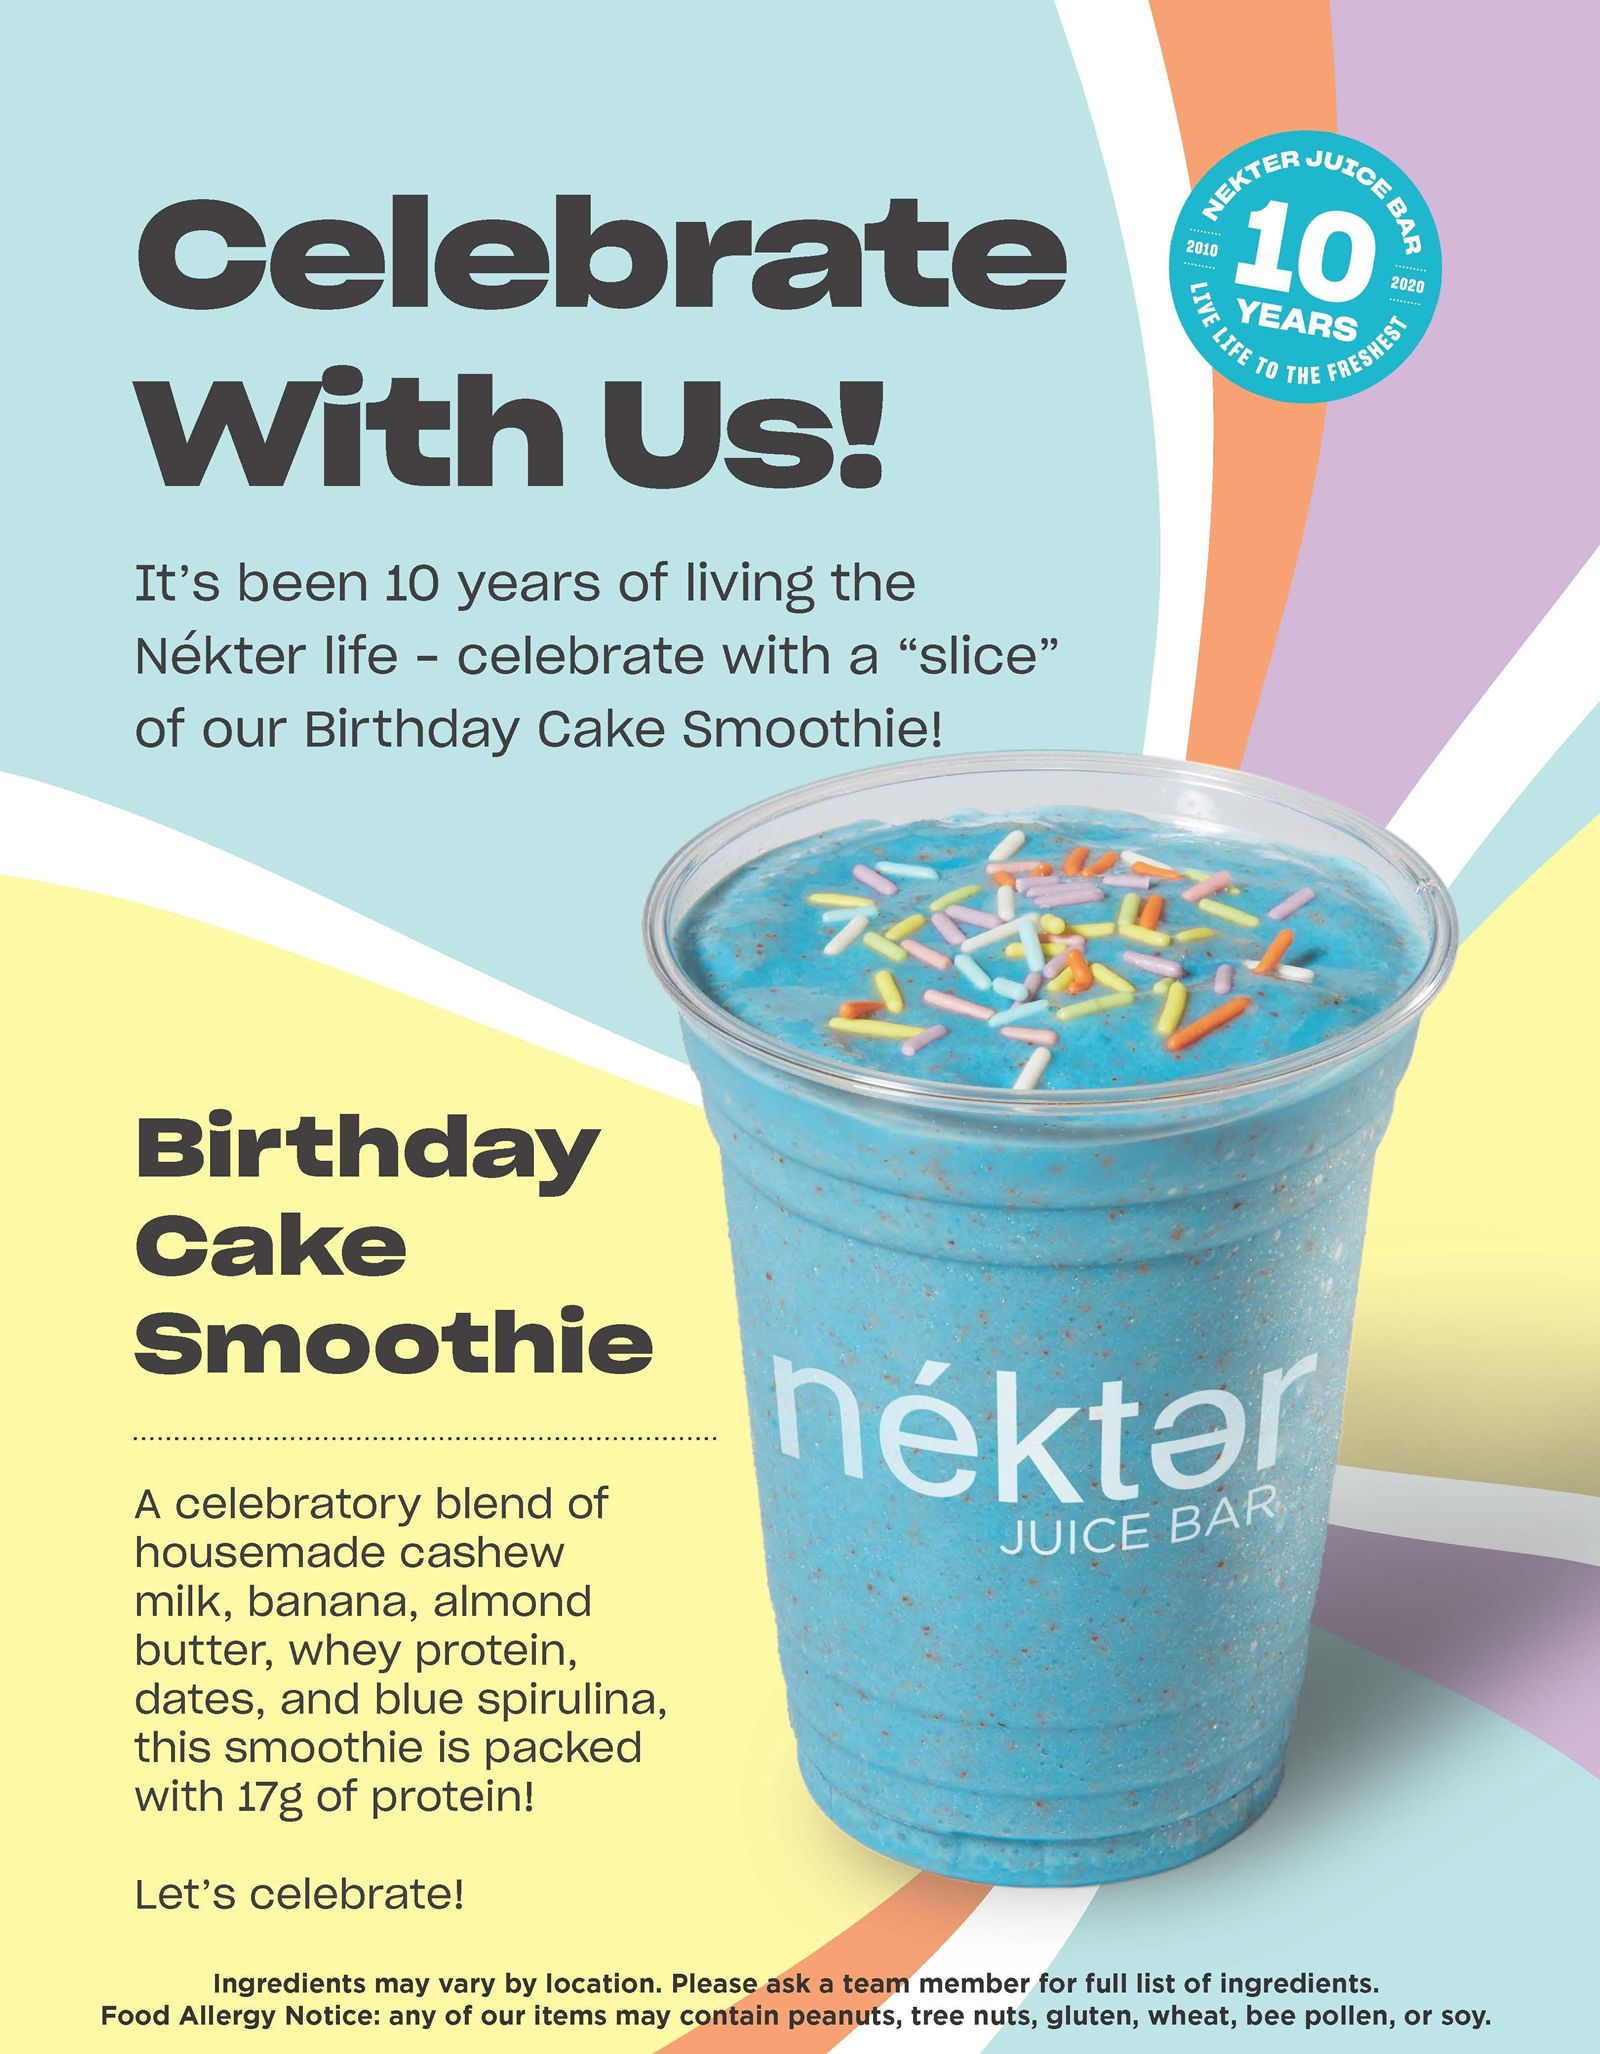 10 Years in the Making: Nékter Juice Bar Reigns as America's Freshest Juice Bar